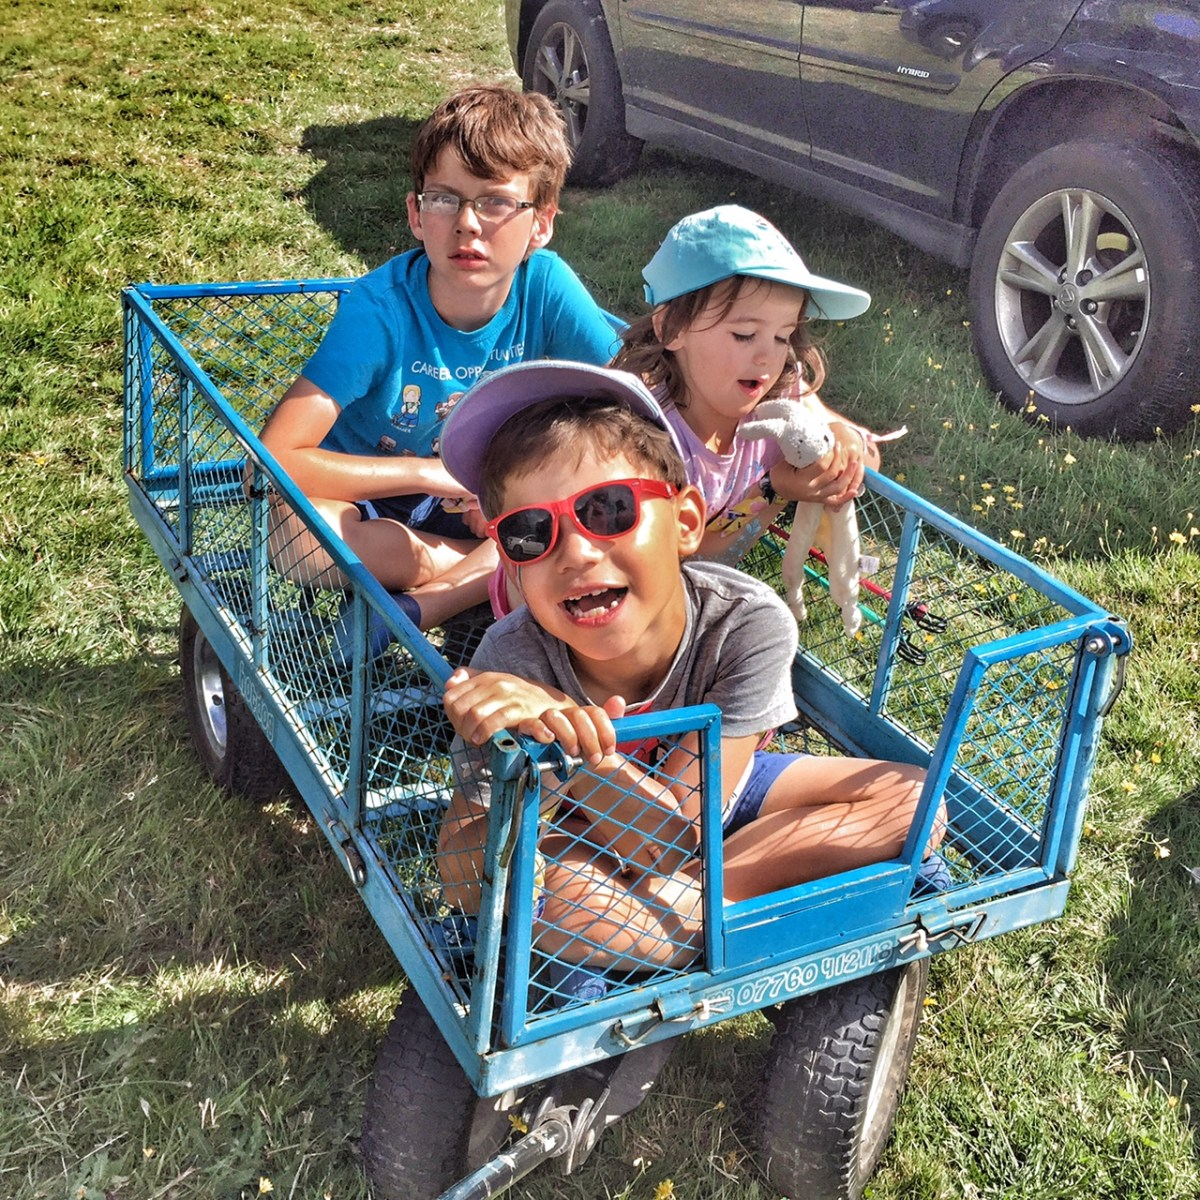 Five went to Camp Bestival - and declared it a success